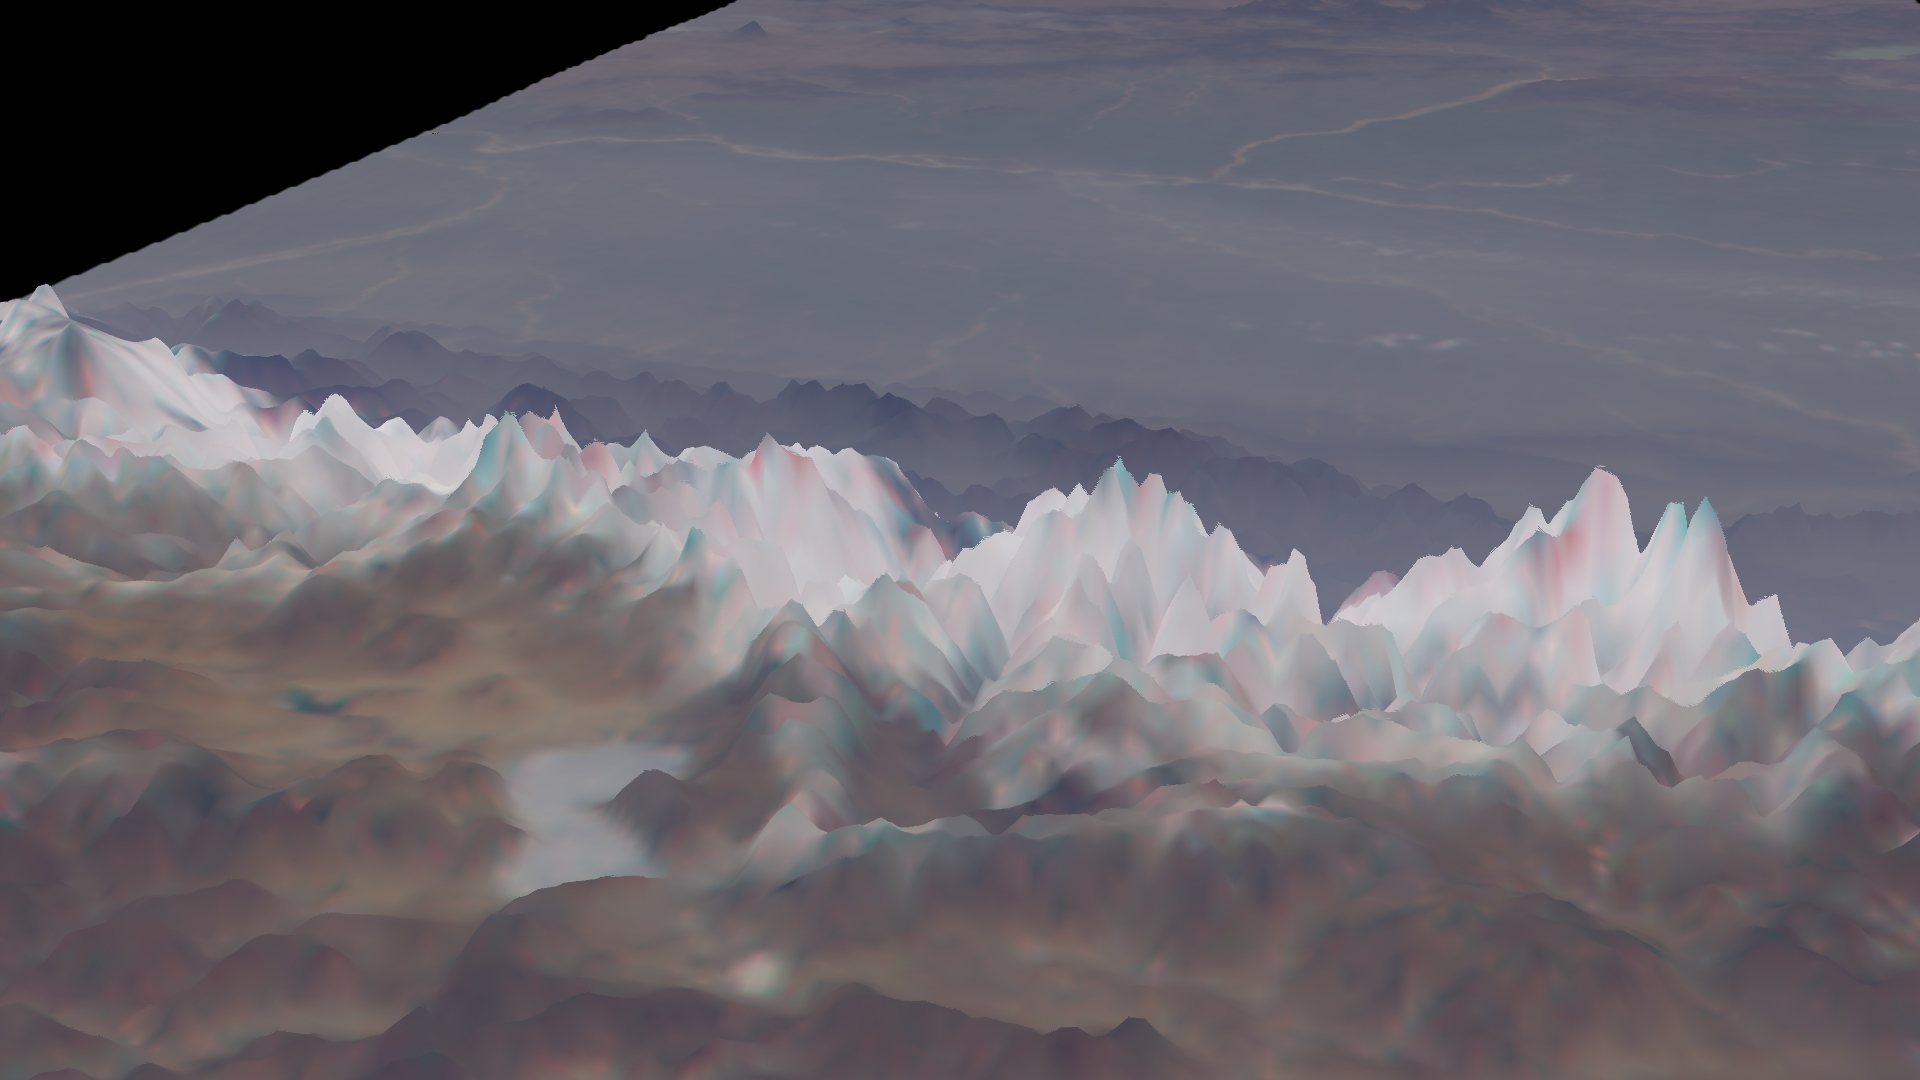 Himalaya Range Oblique View from MISR